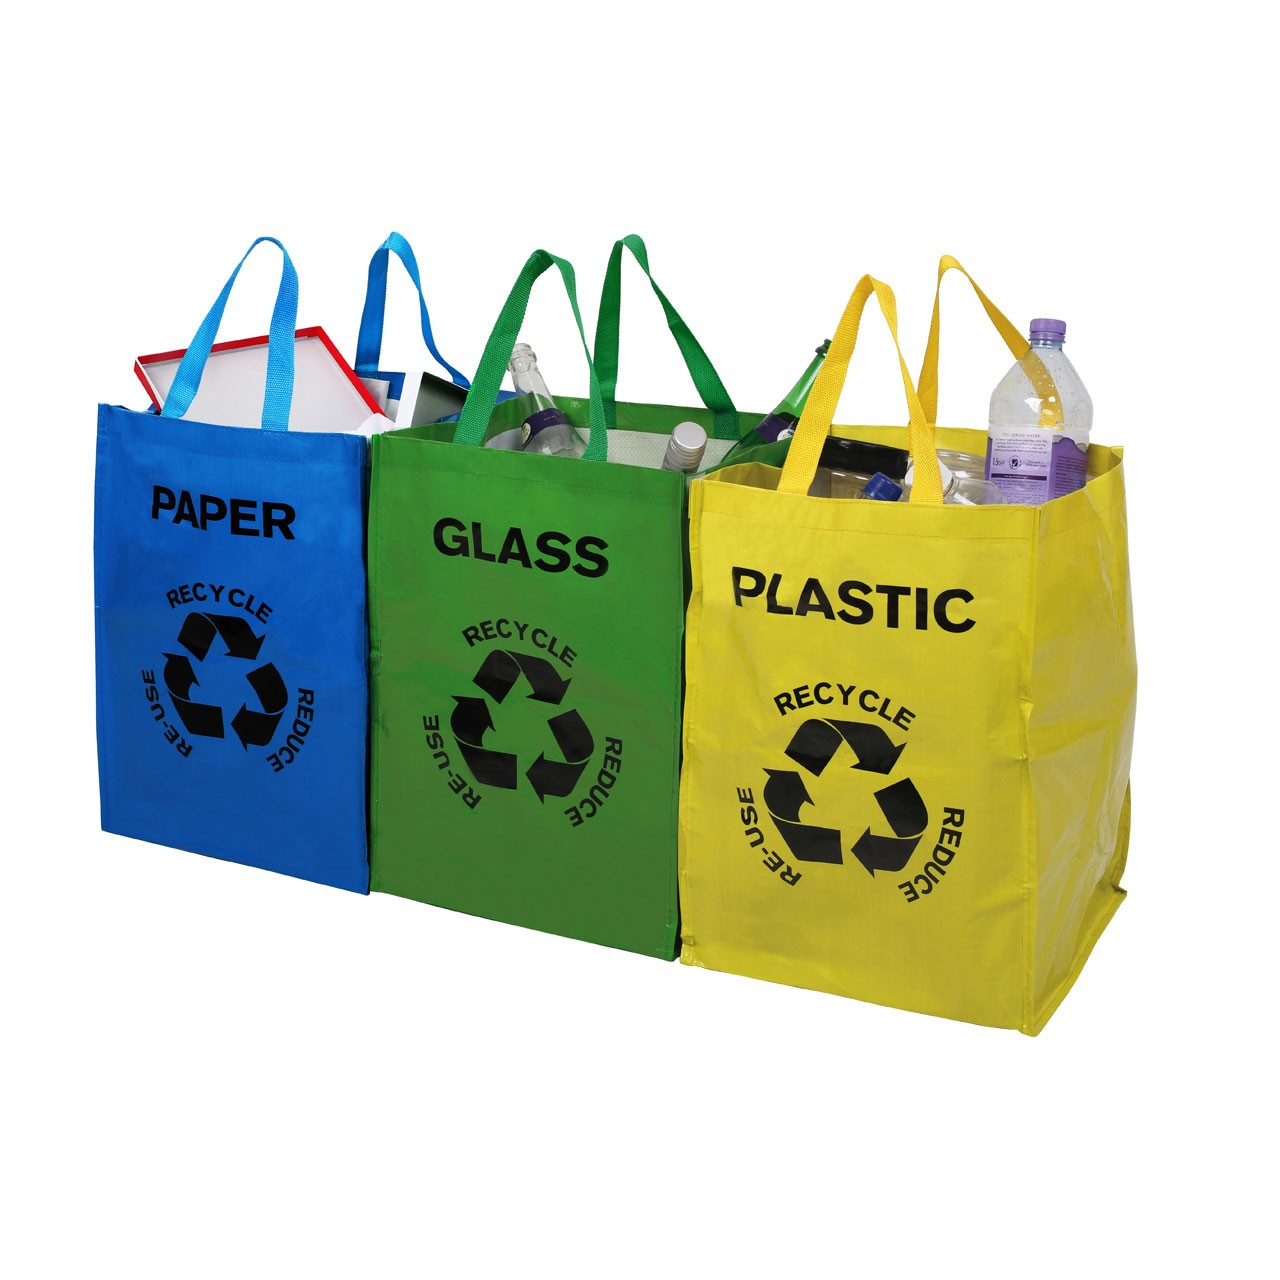 Prime Furnishing Plastic, Glass & Paper Recycle Bags - Set of 3